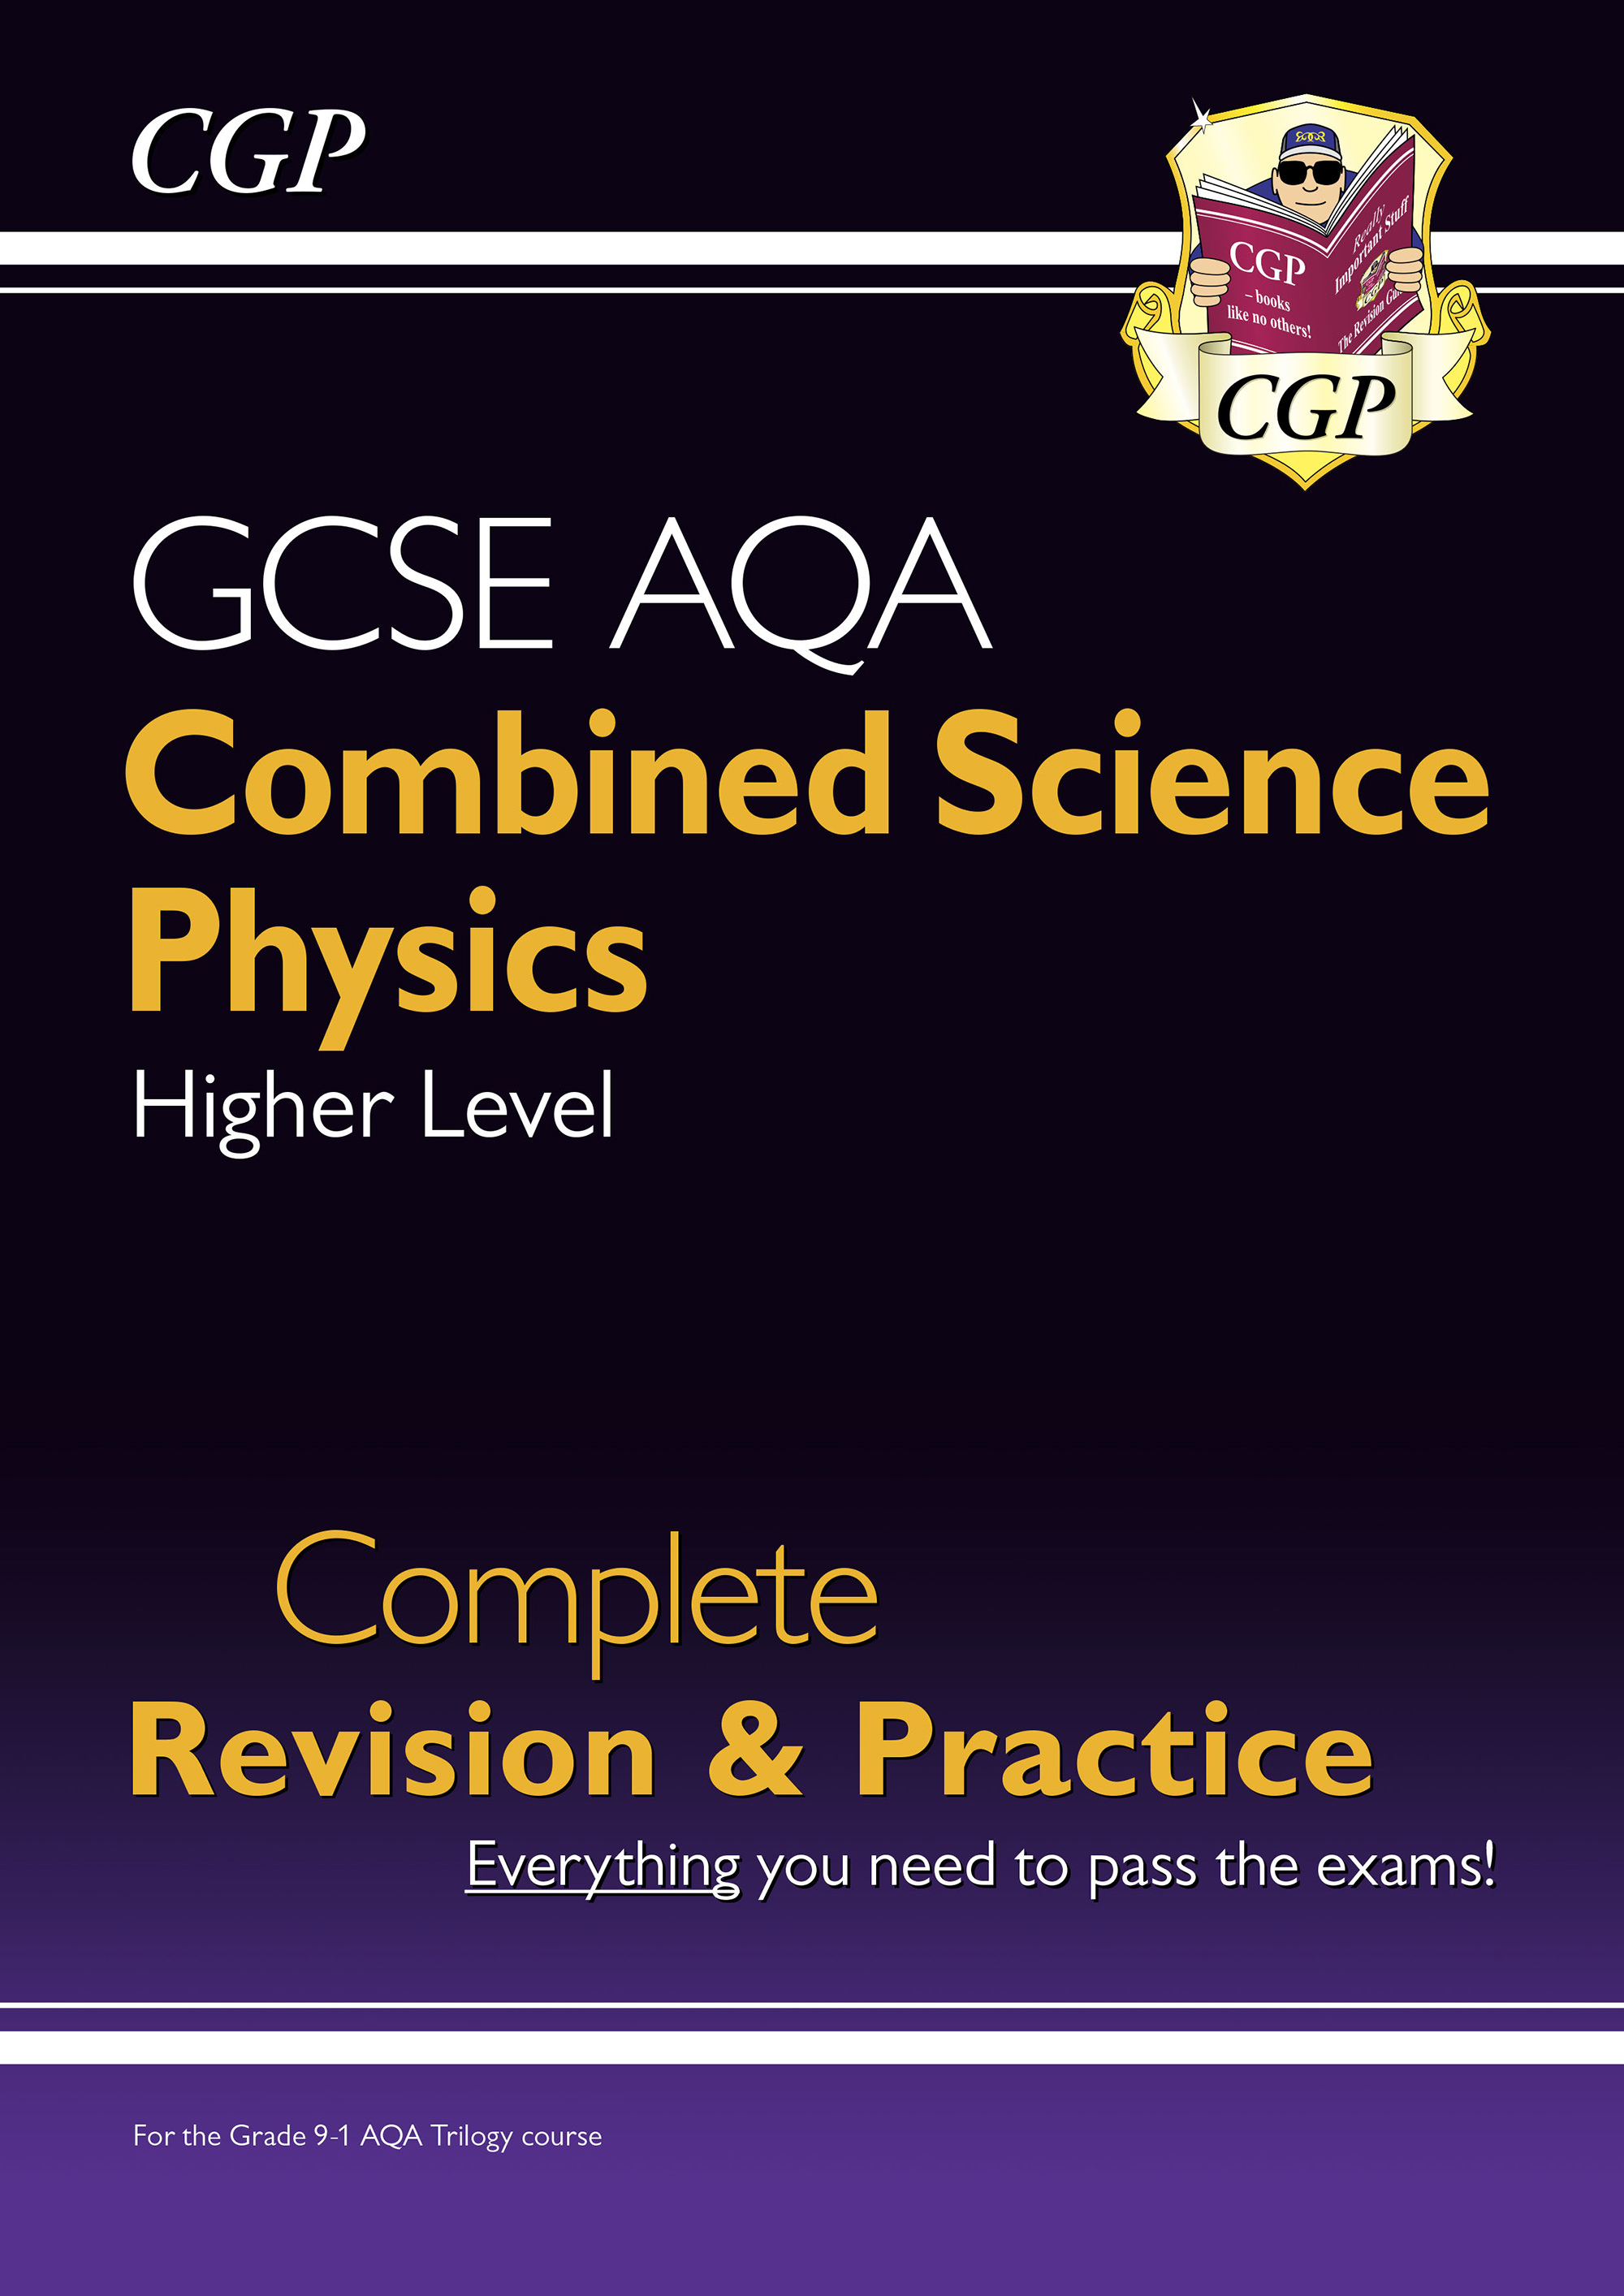 SCPAS41D - 9-1 GCSE Combined Science: Physics AQA Higher Complete Revision & Practice Online Edition